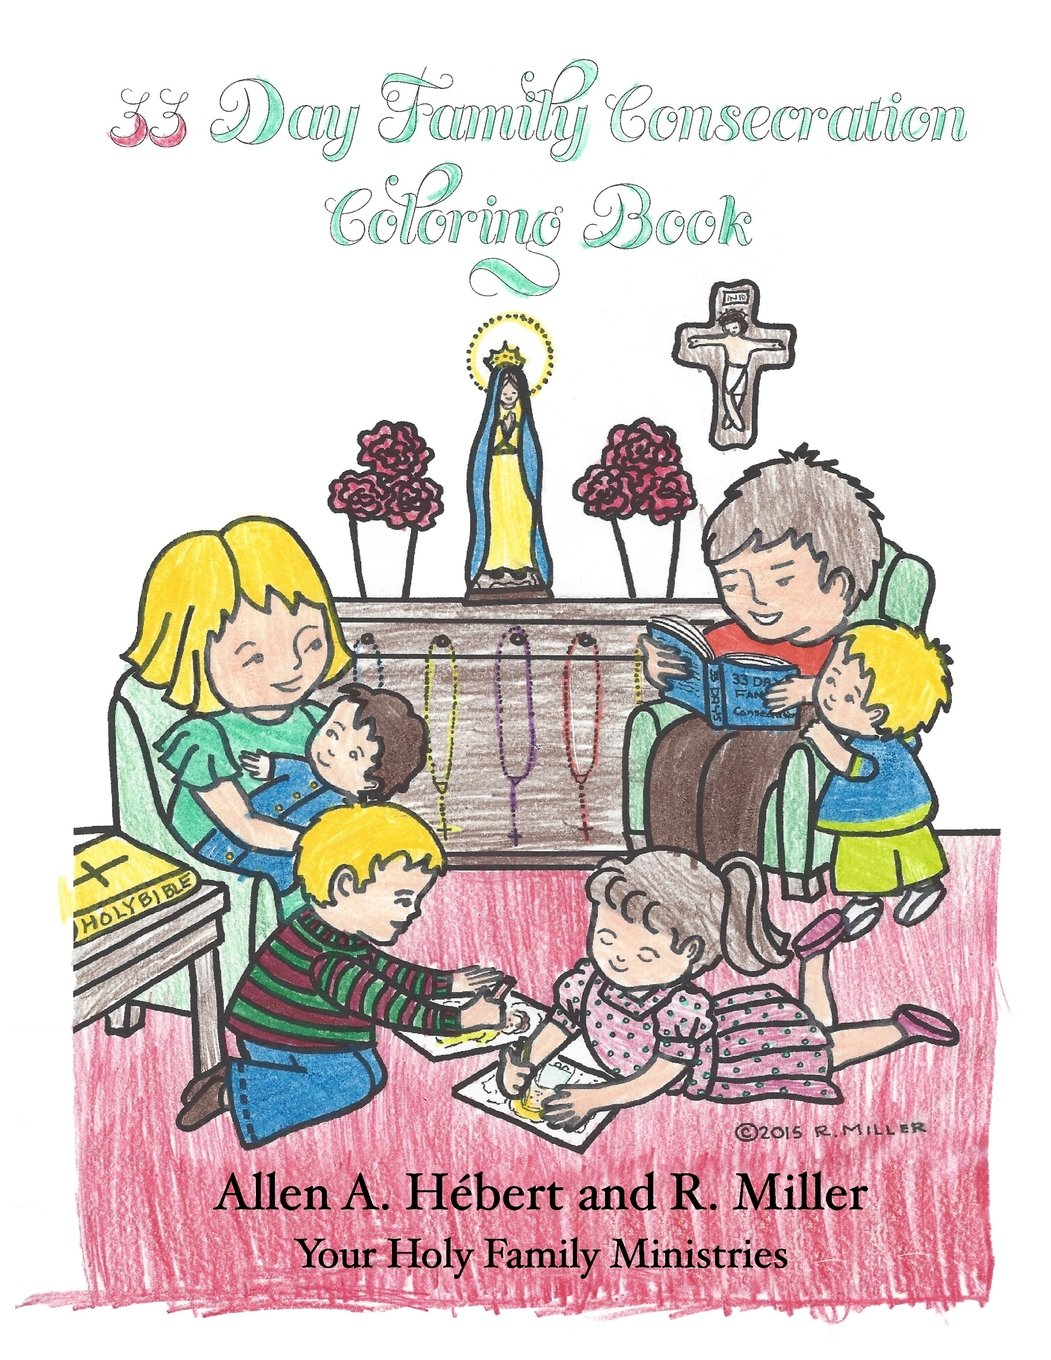 33 Day Family Consecration Coloring Book